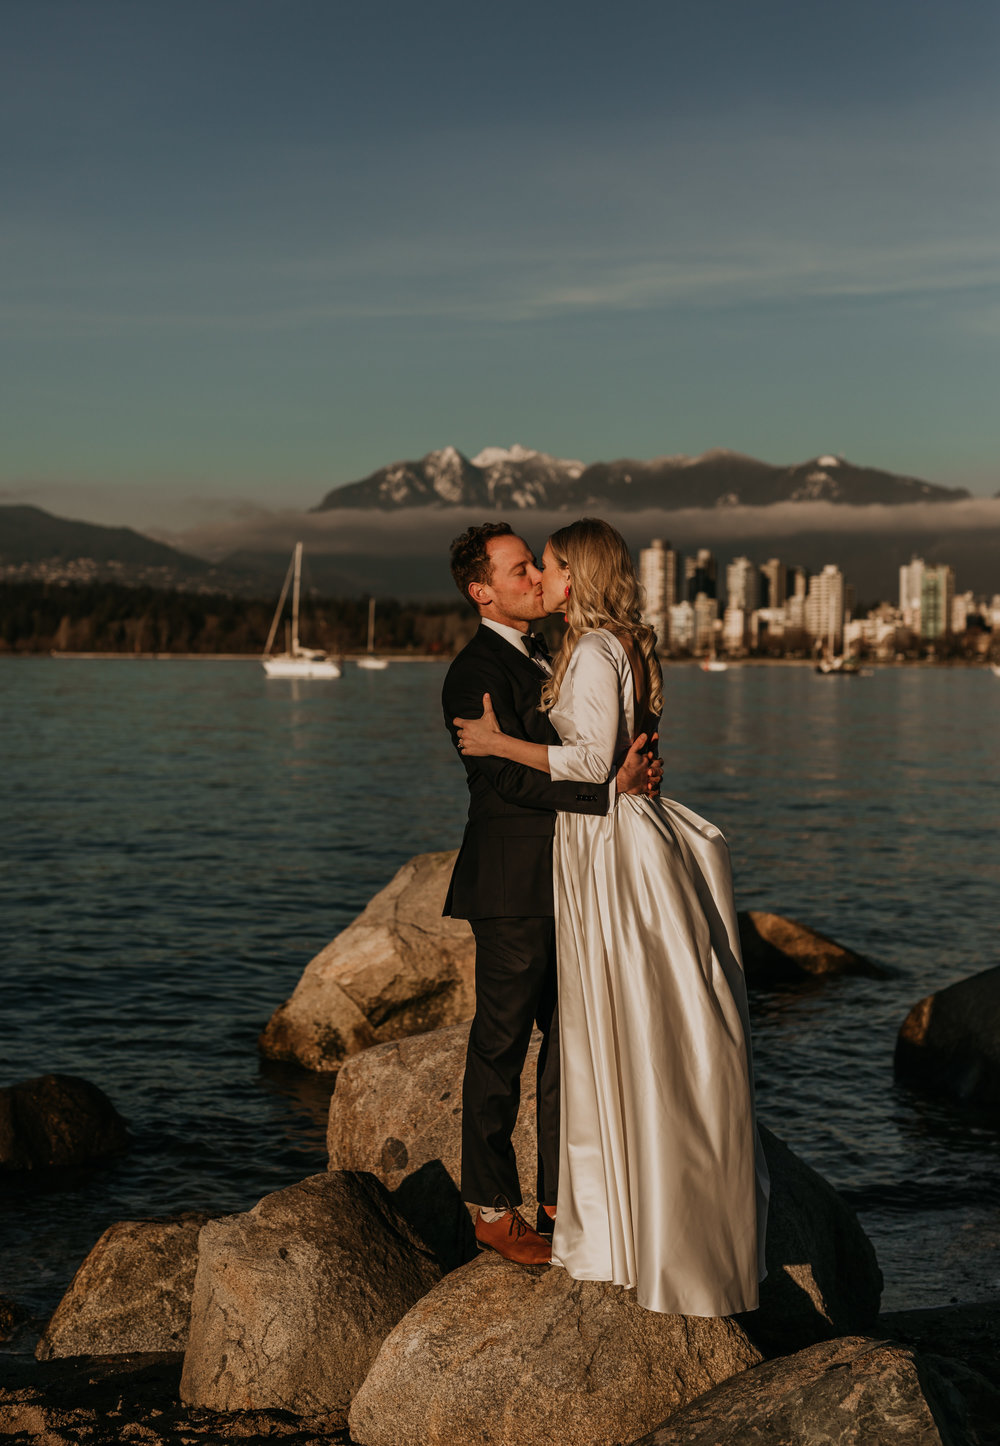 Vancouver Wedding Photos - Vegan Wedding Photographer - New Years Eve Wedding Photos - Vancouver Wedding Photographer - Vancouver Wedding Videographer - 615.JPG